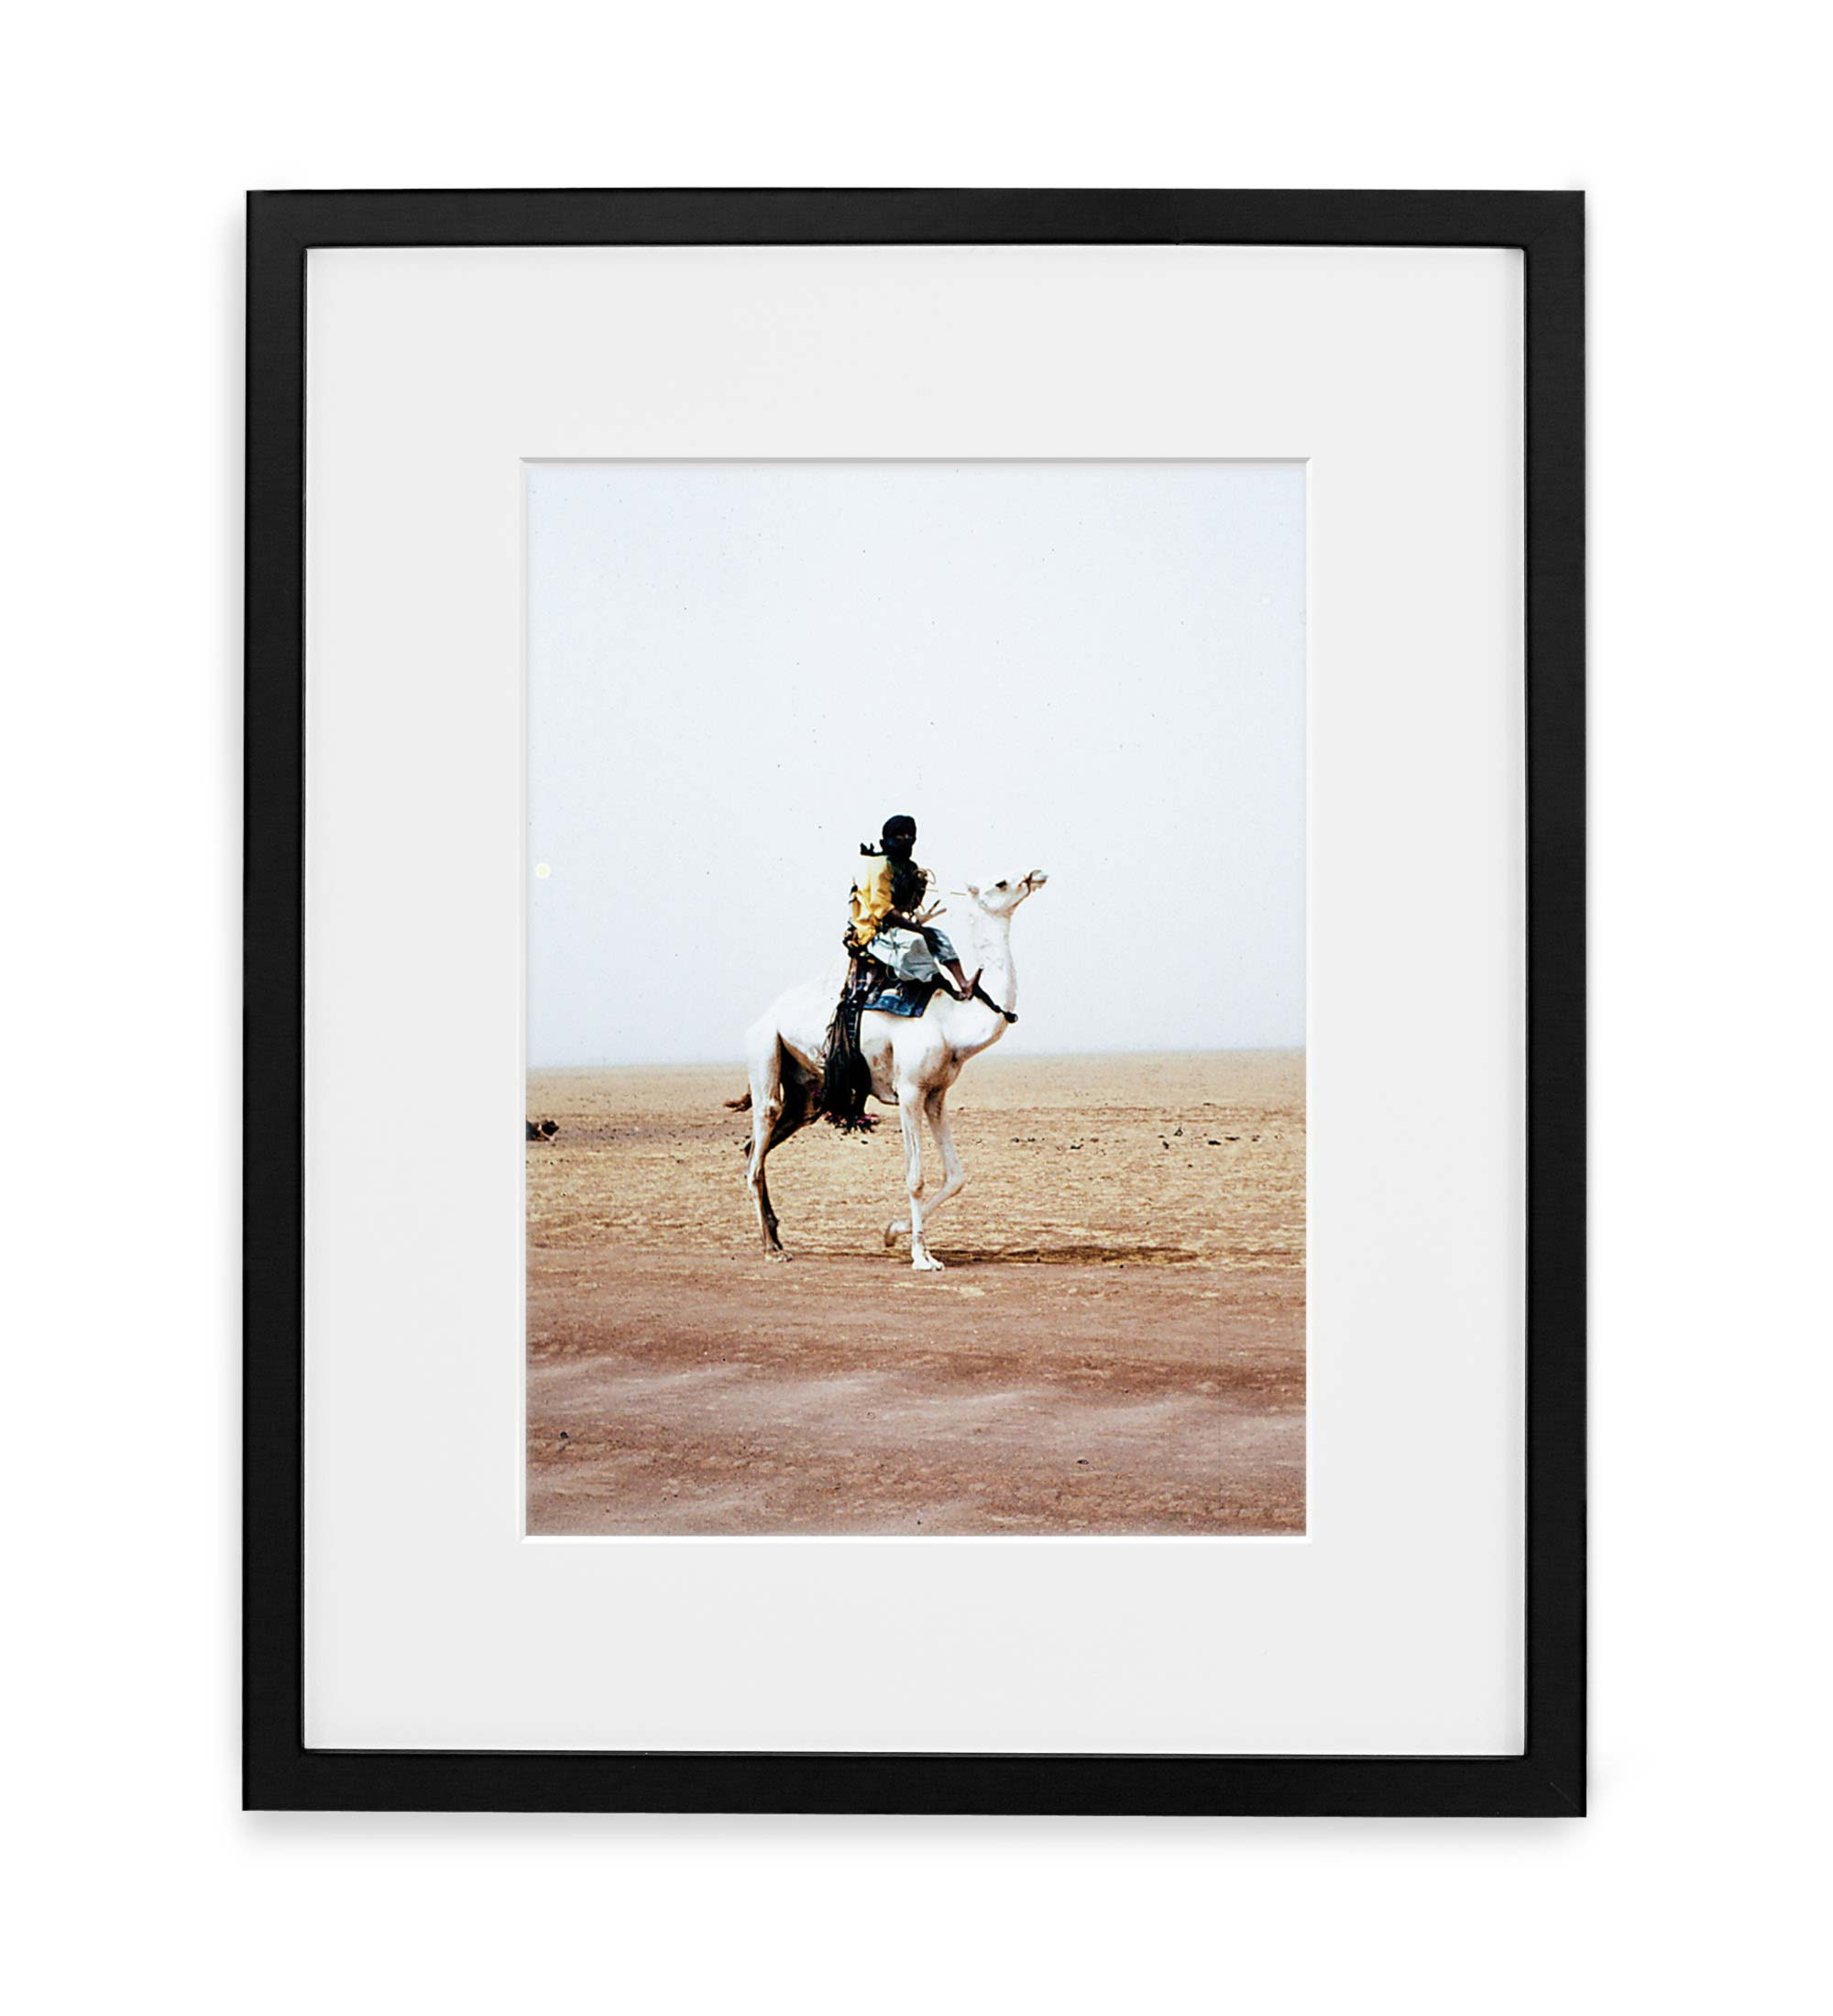 Tuareg Framed Black Wood